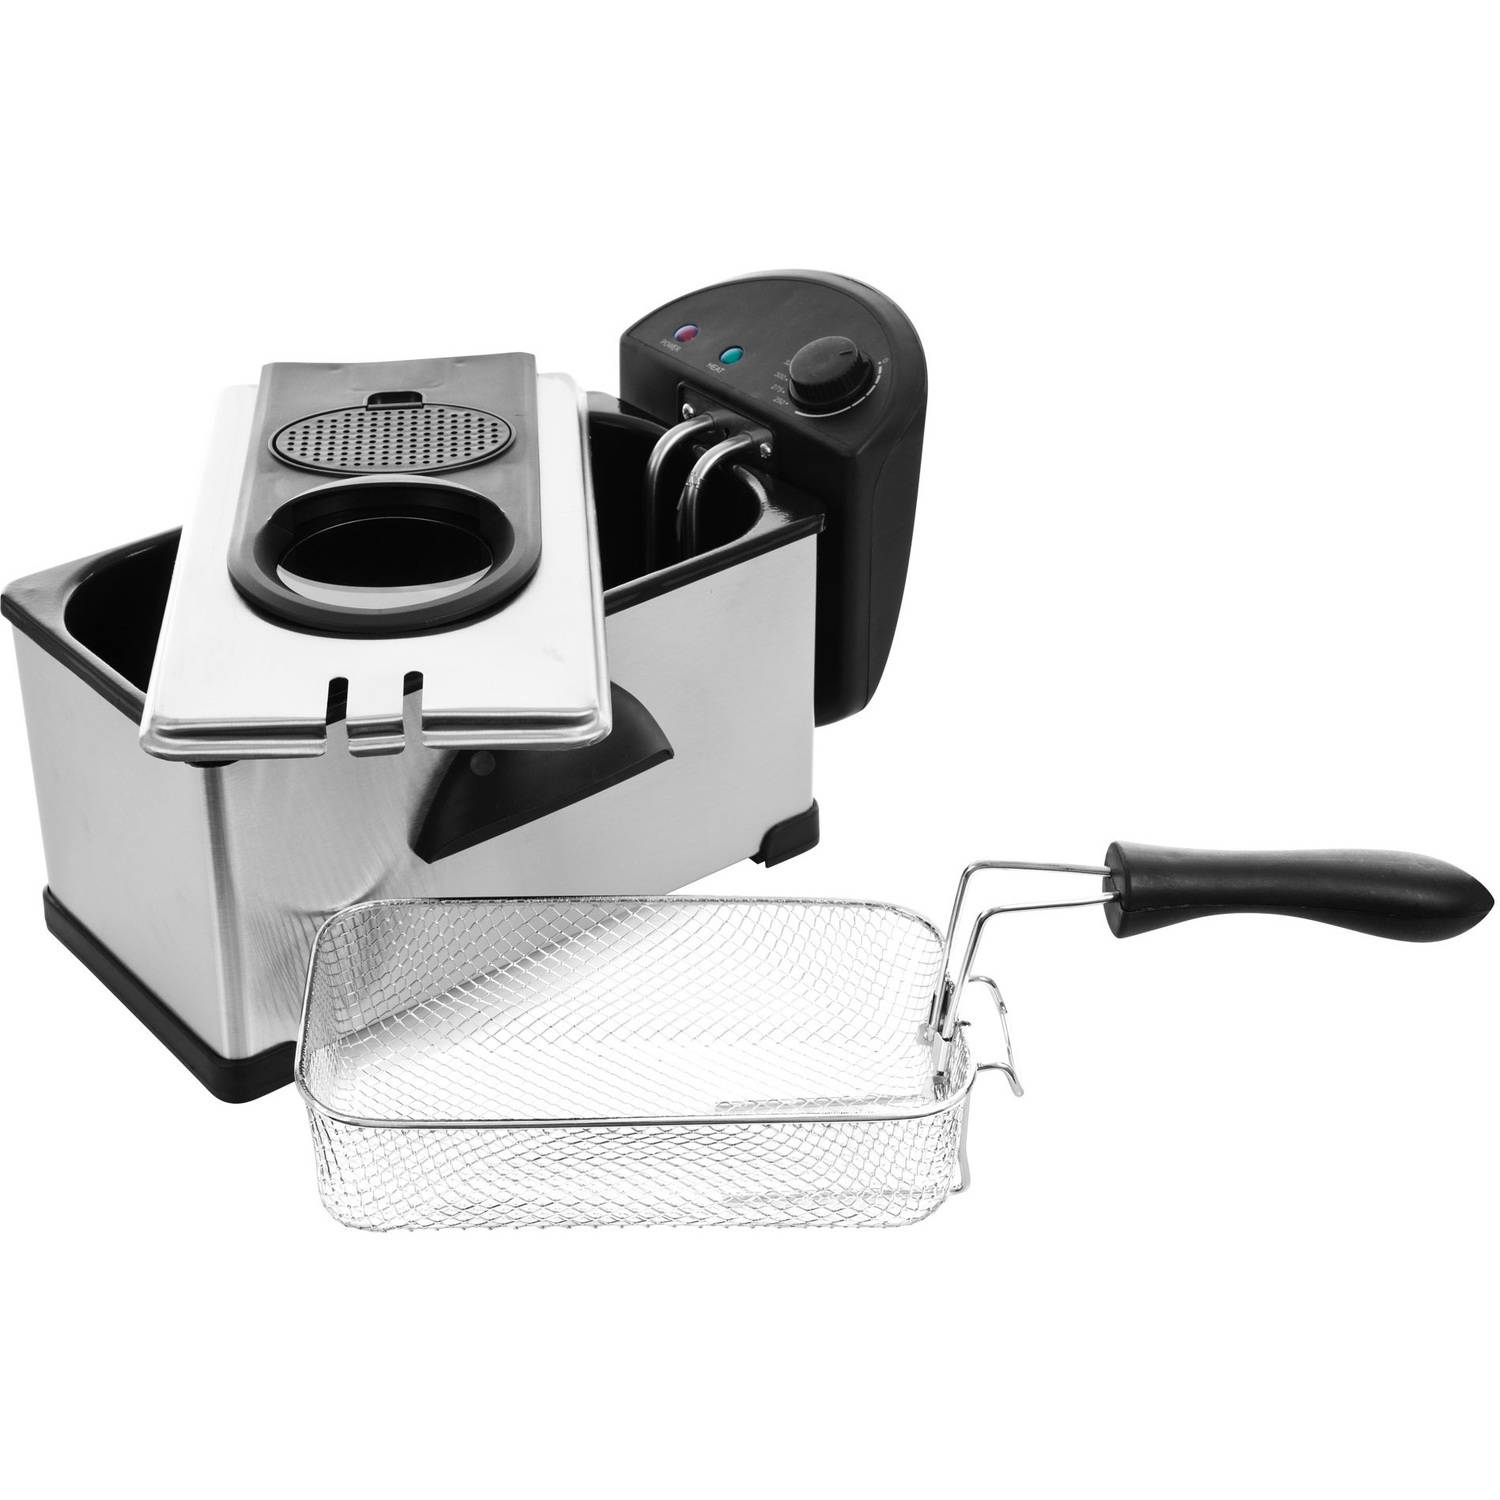 Chef Buddy Electric 3.20 Quart Deep Fryer, Stainless Steel